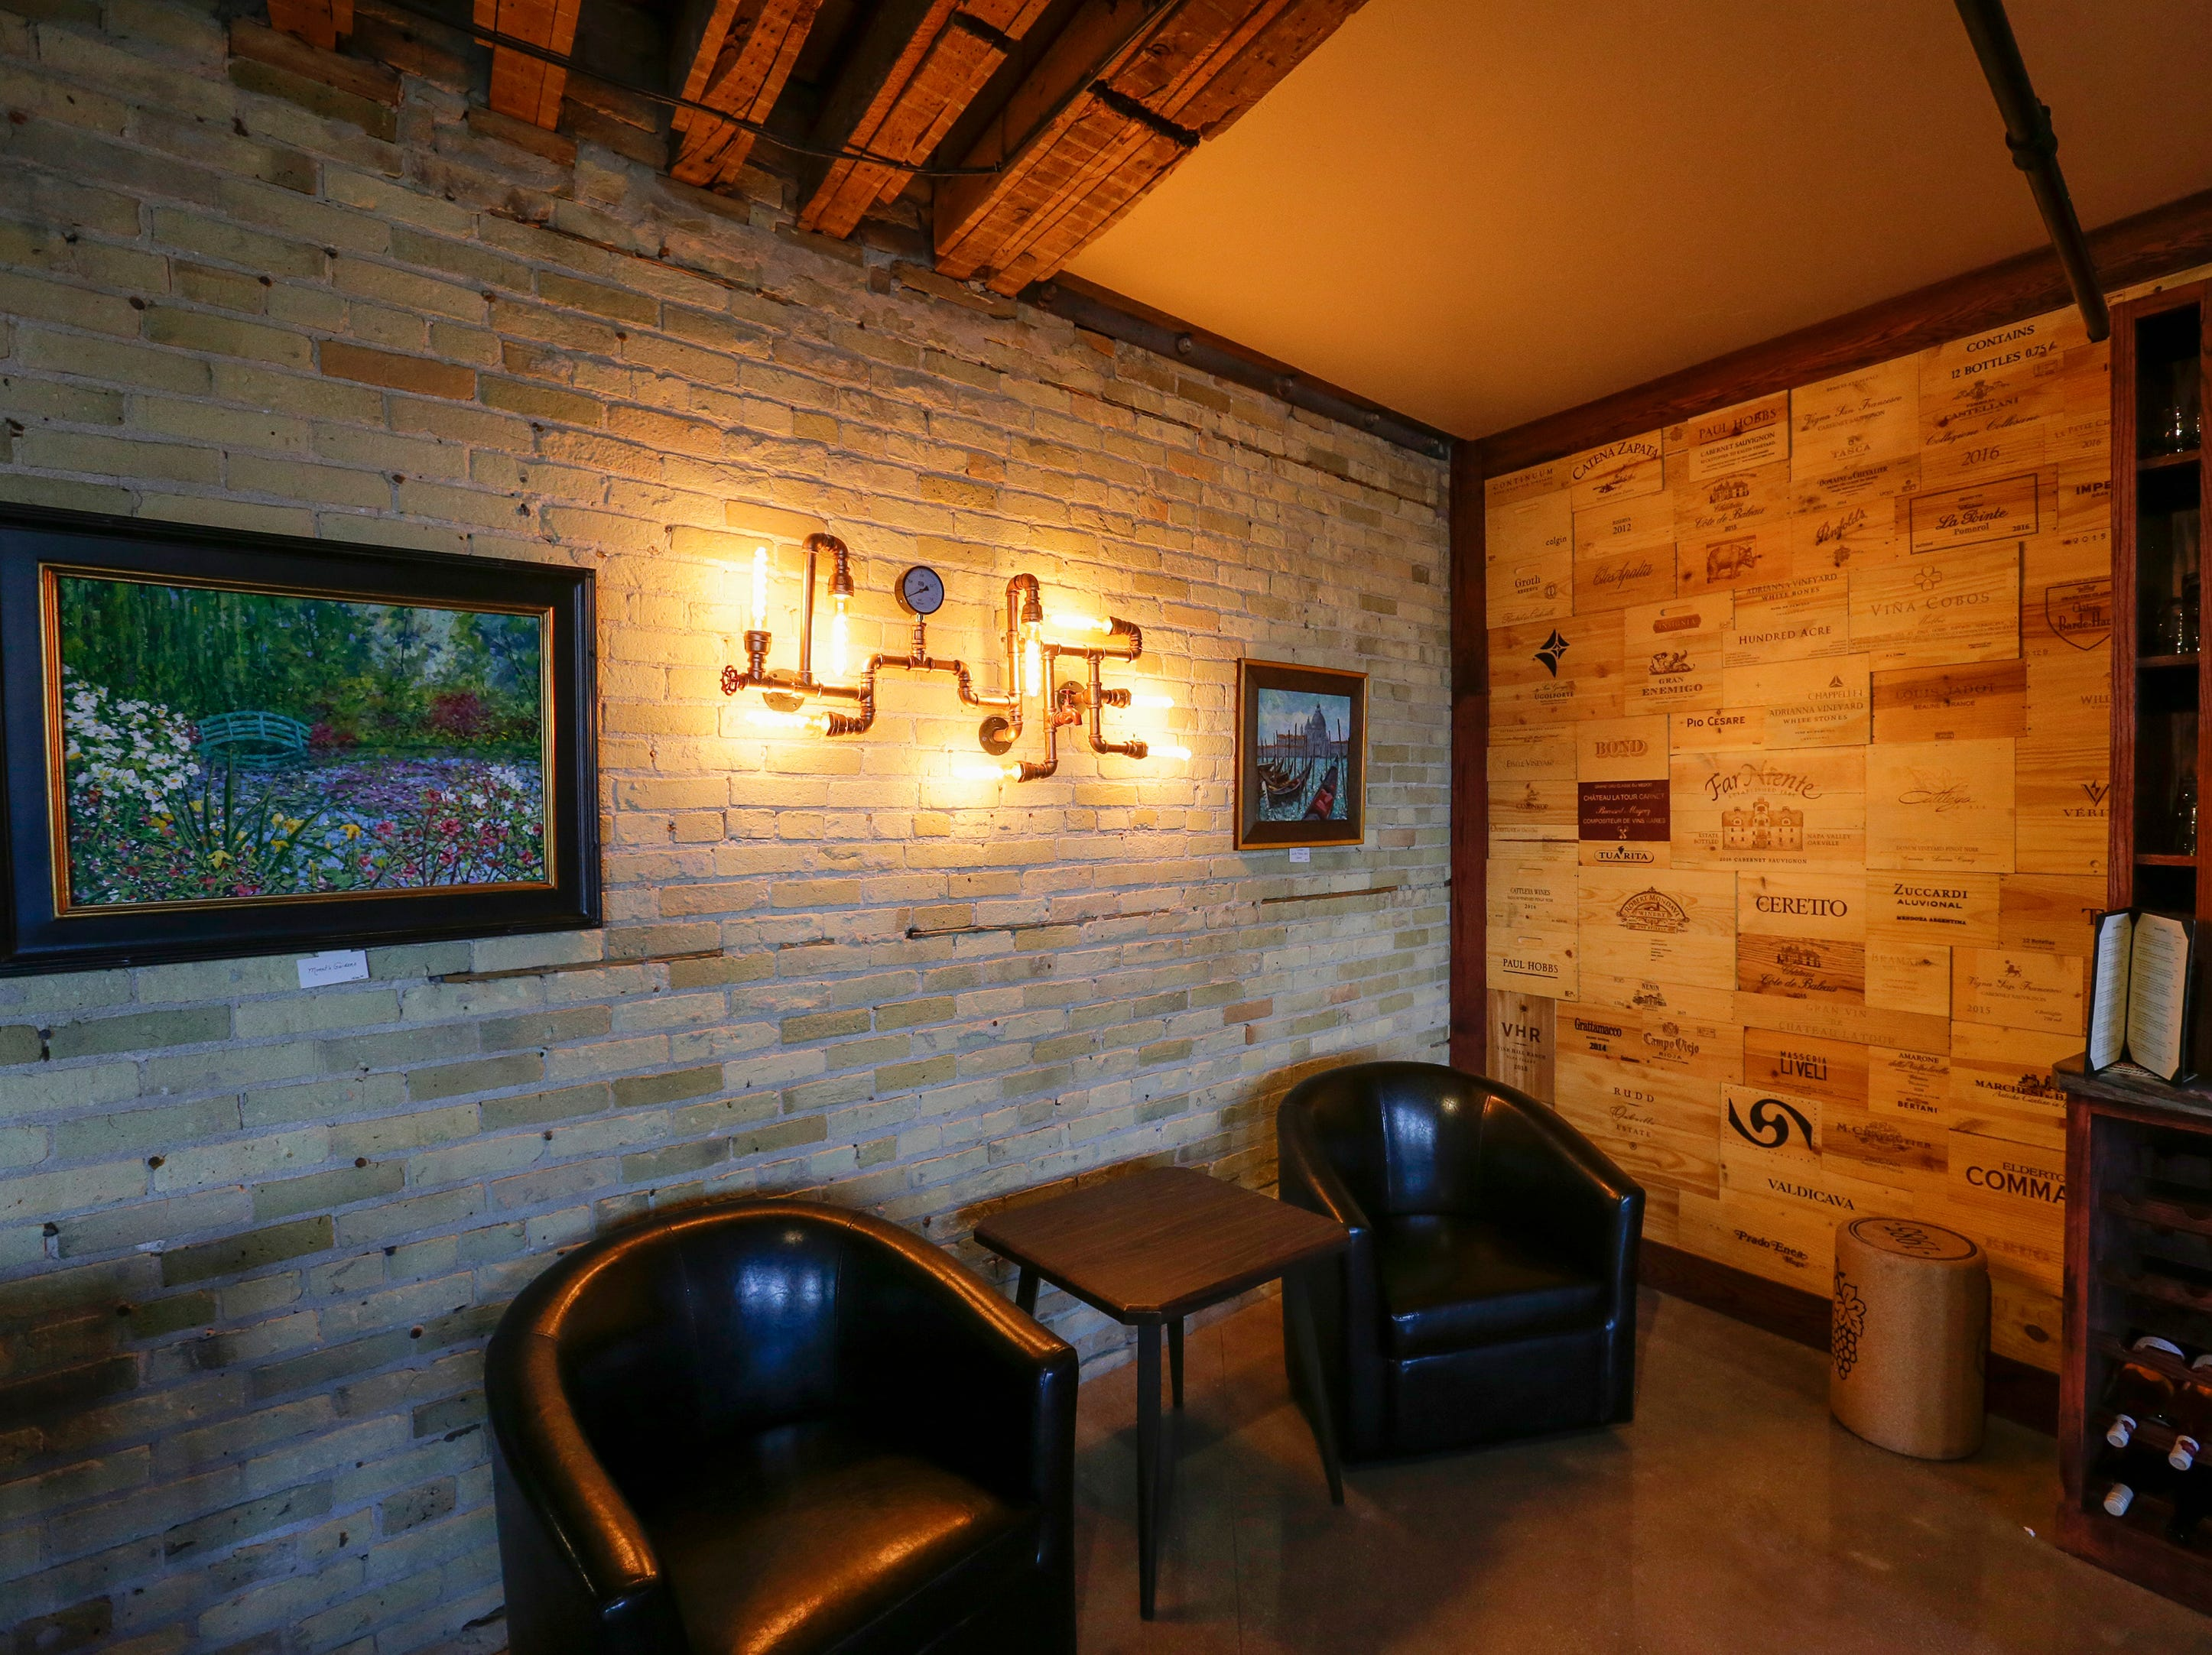 Paintings by Bob Beck adorn the walls along handmade finishes created by the owners at the Waterfront Wine Bar Saturday, May 4, 2019, in Manitowoc, Wis. Joshua Clark/USA TODAY NETWORK-Wisconsin